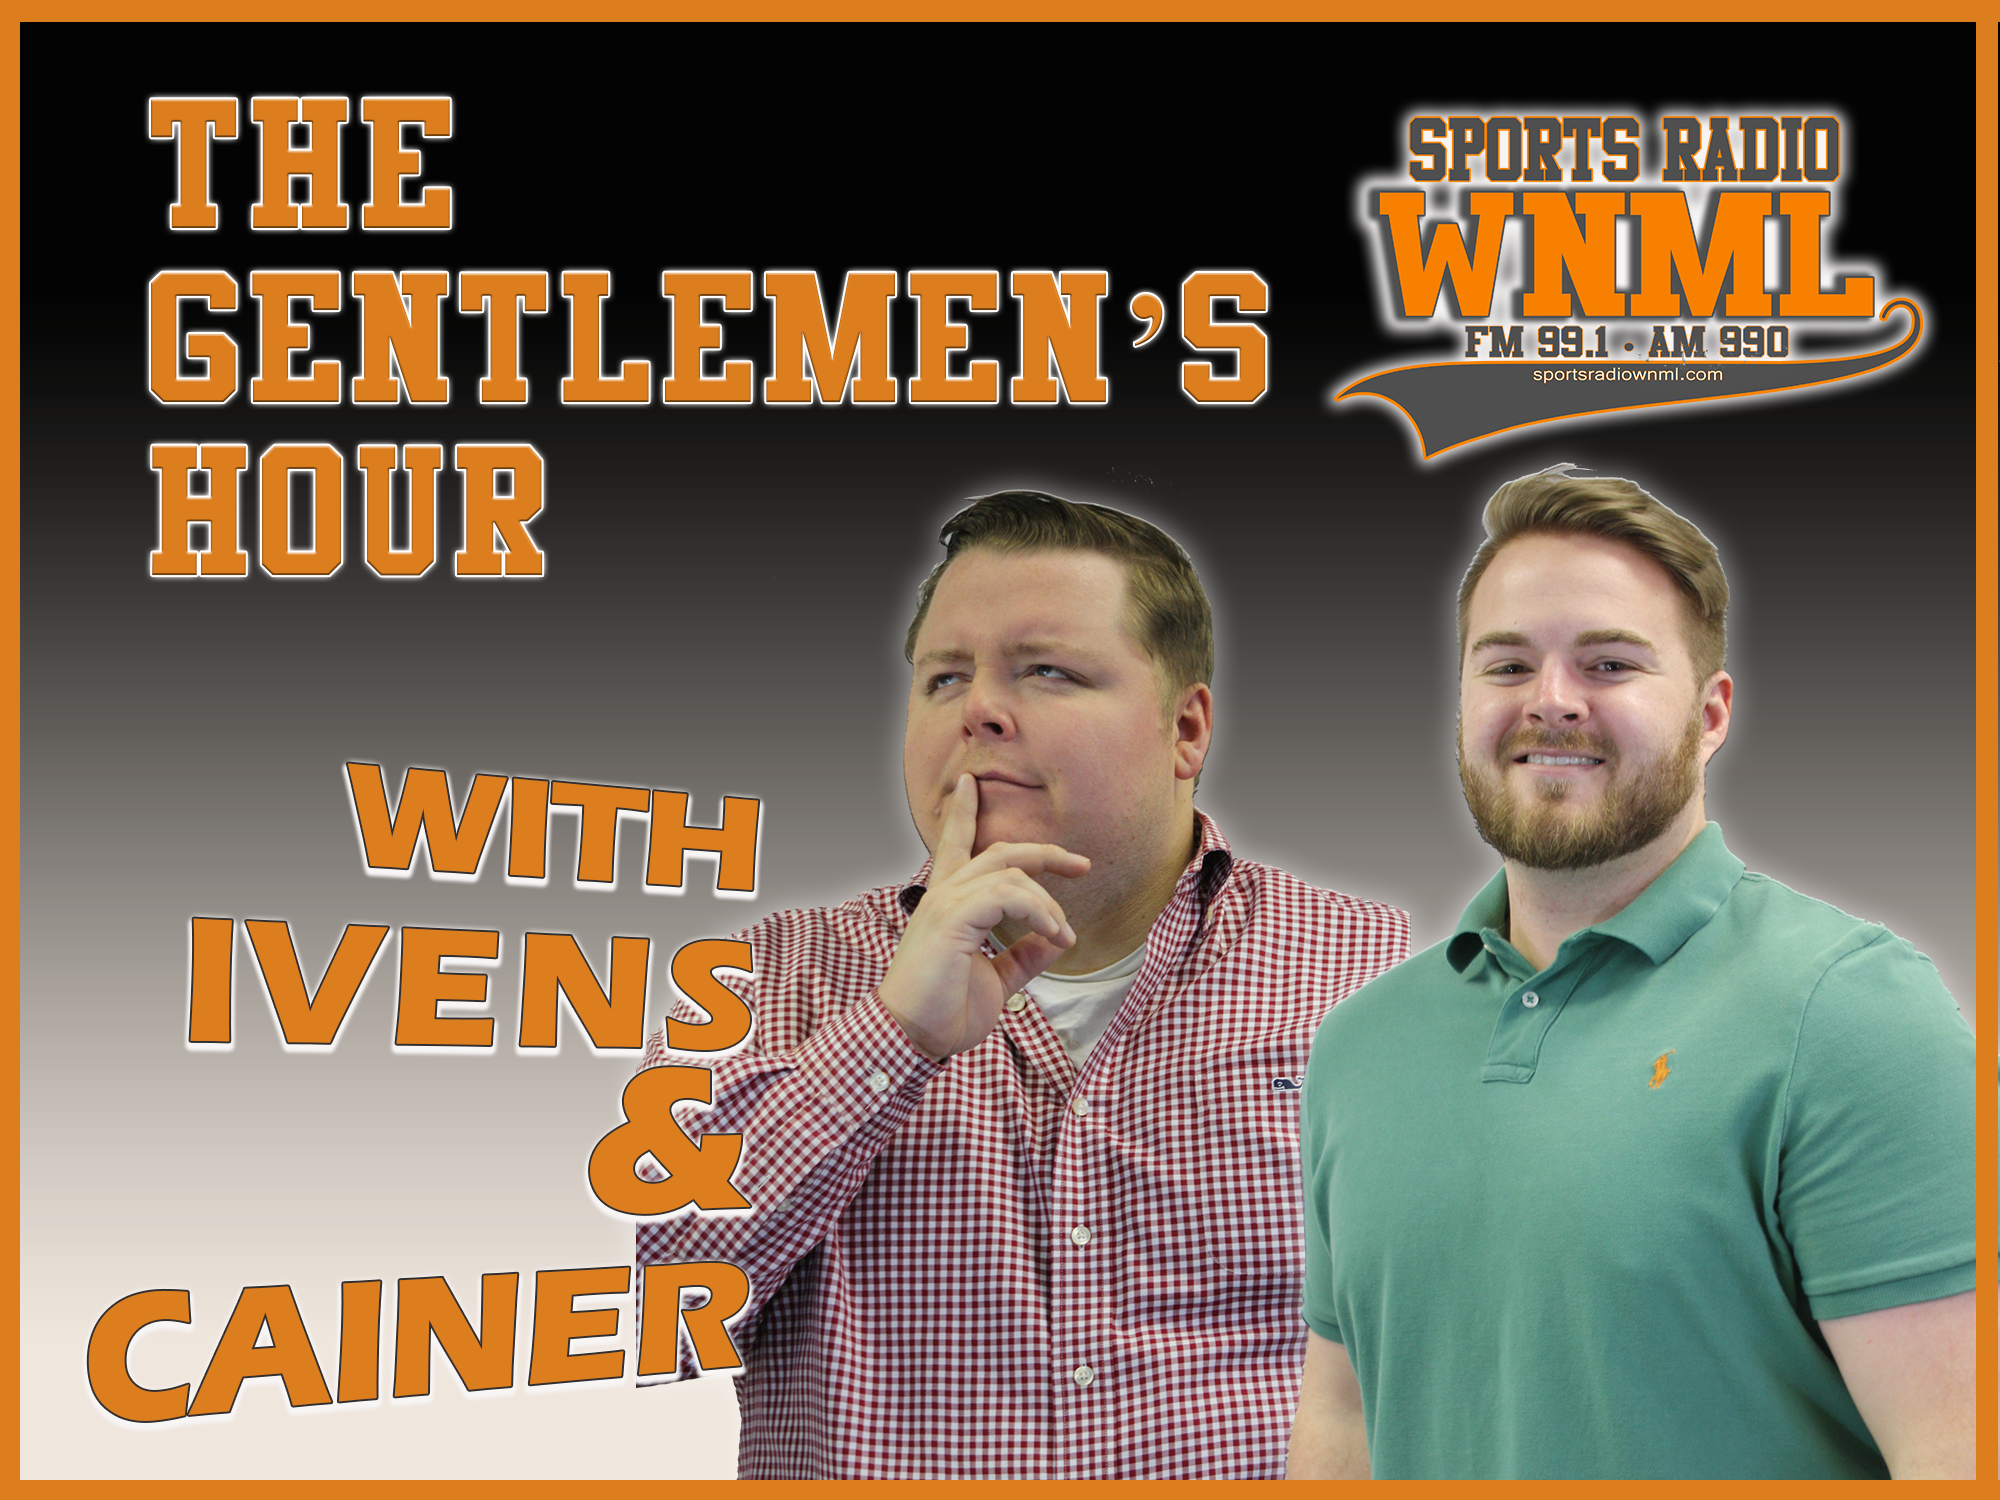 The Gentlemen's Hour Podcast: Episode 22 (3.12.19)